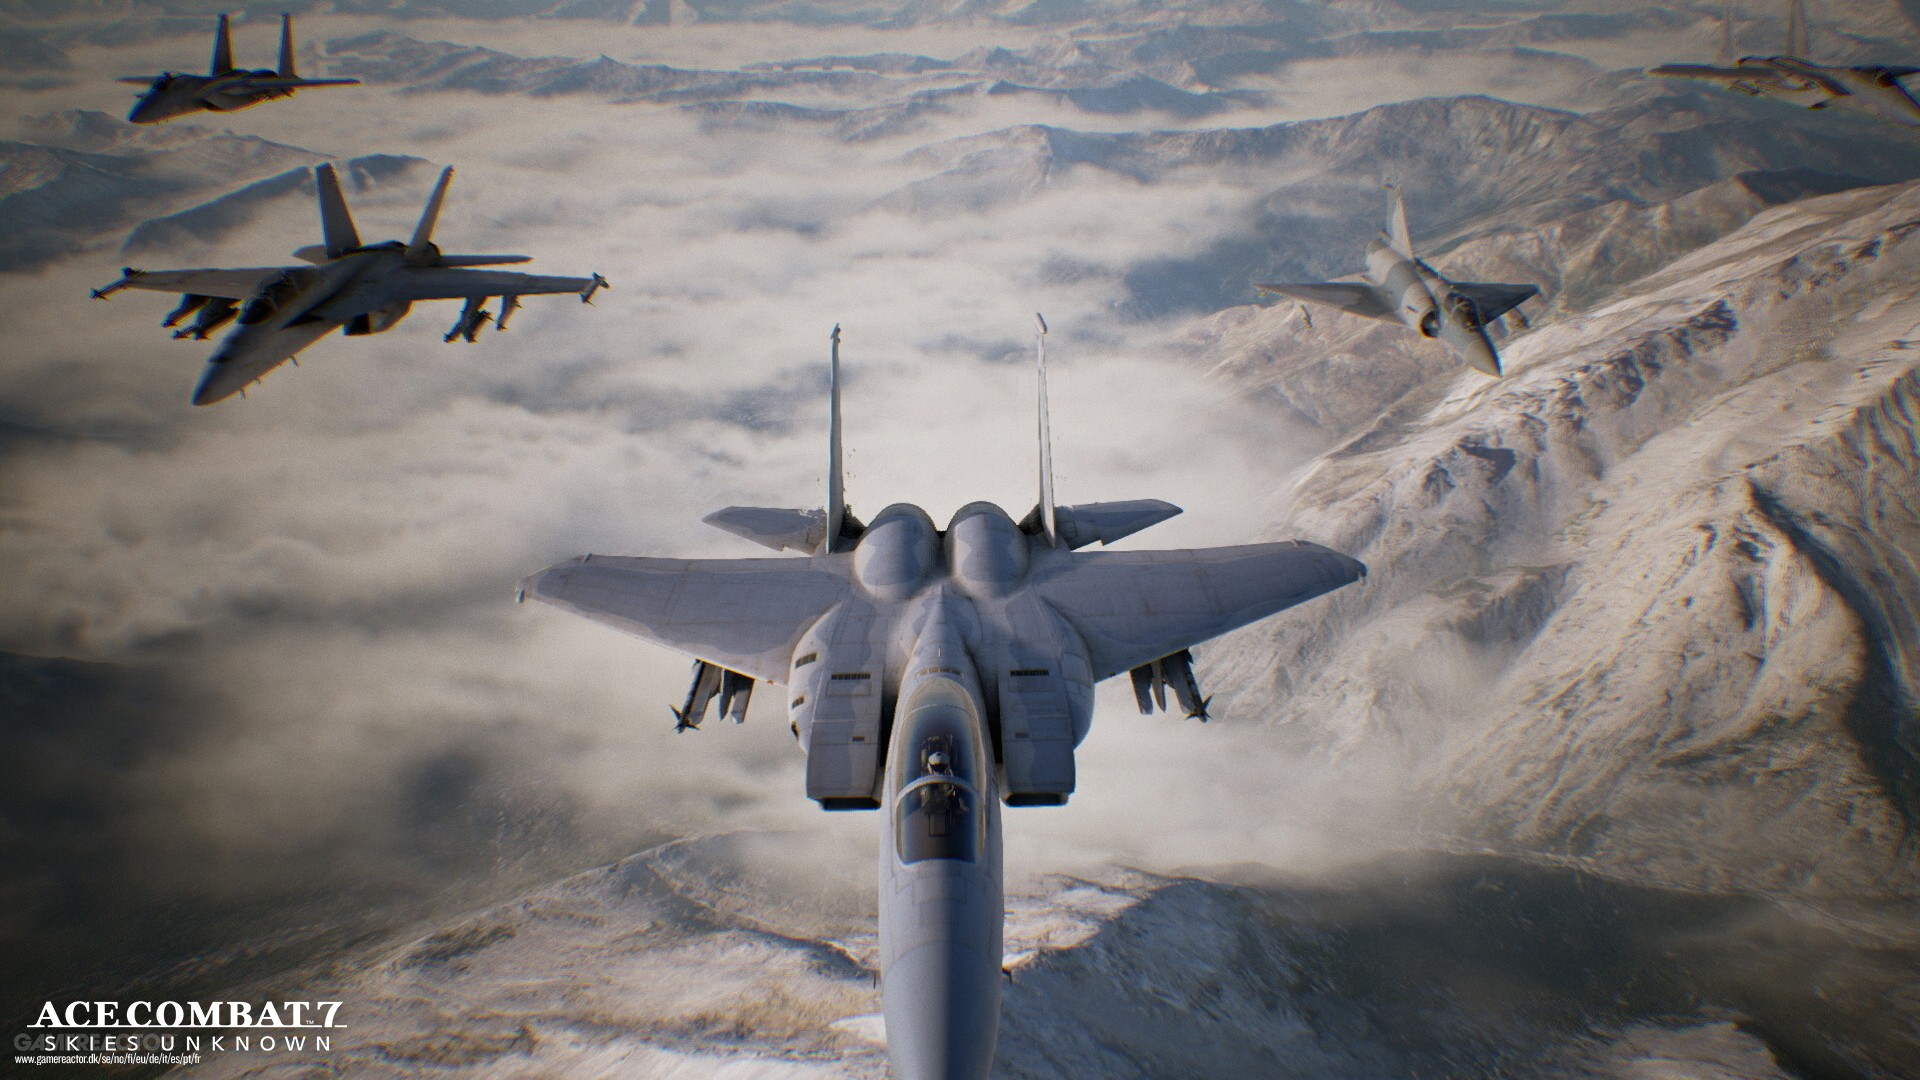 Pictures Of Ace Combat 7 Skies Unknown Psvr Hands On 36